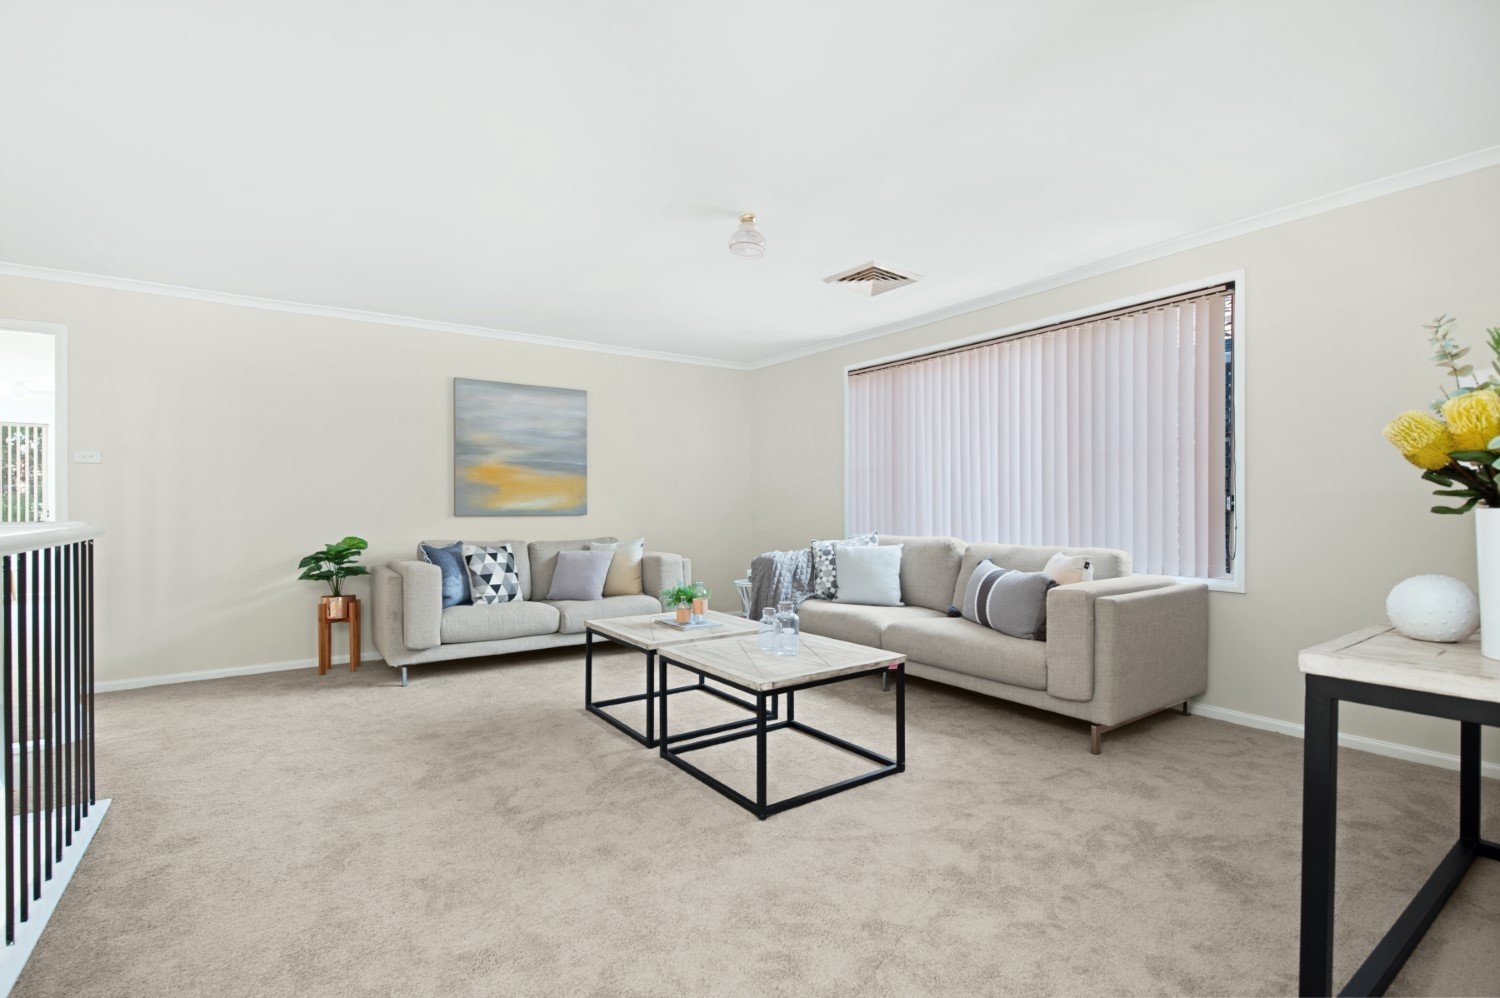 Spacious Family Home | Floraville - https://www.peonyandsilk.com.au/wp-content/uploads/2019/01/Peony-and-Silk-Spacious-Family-Home-Floraville-5.jpg